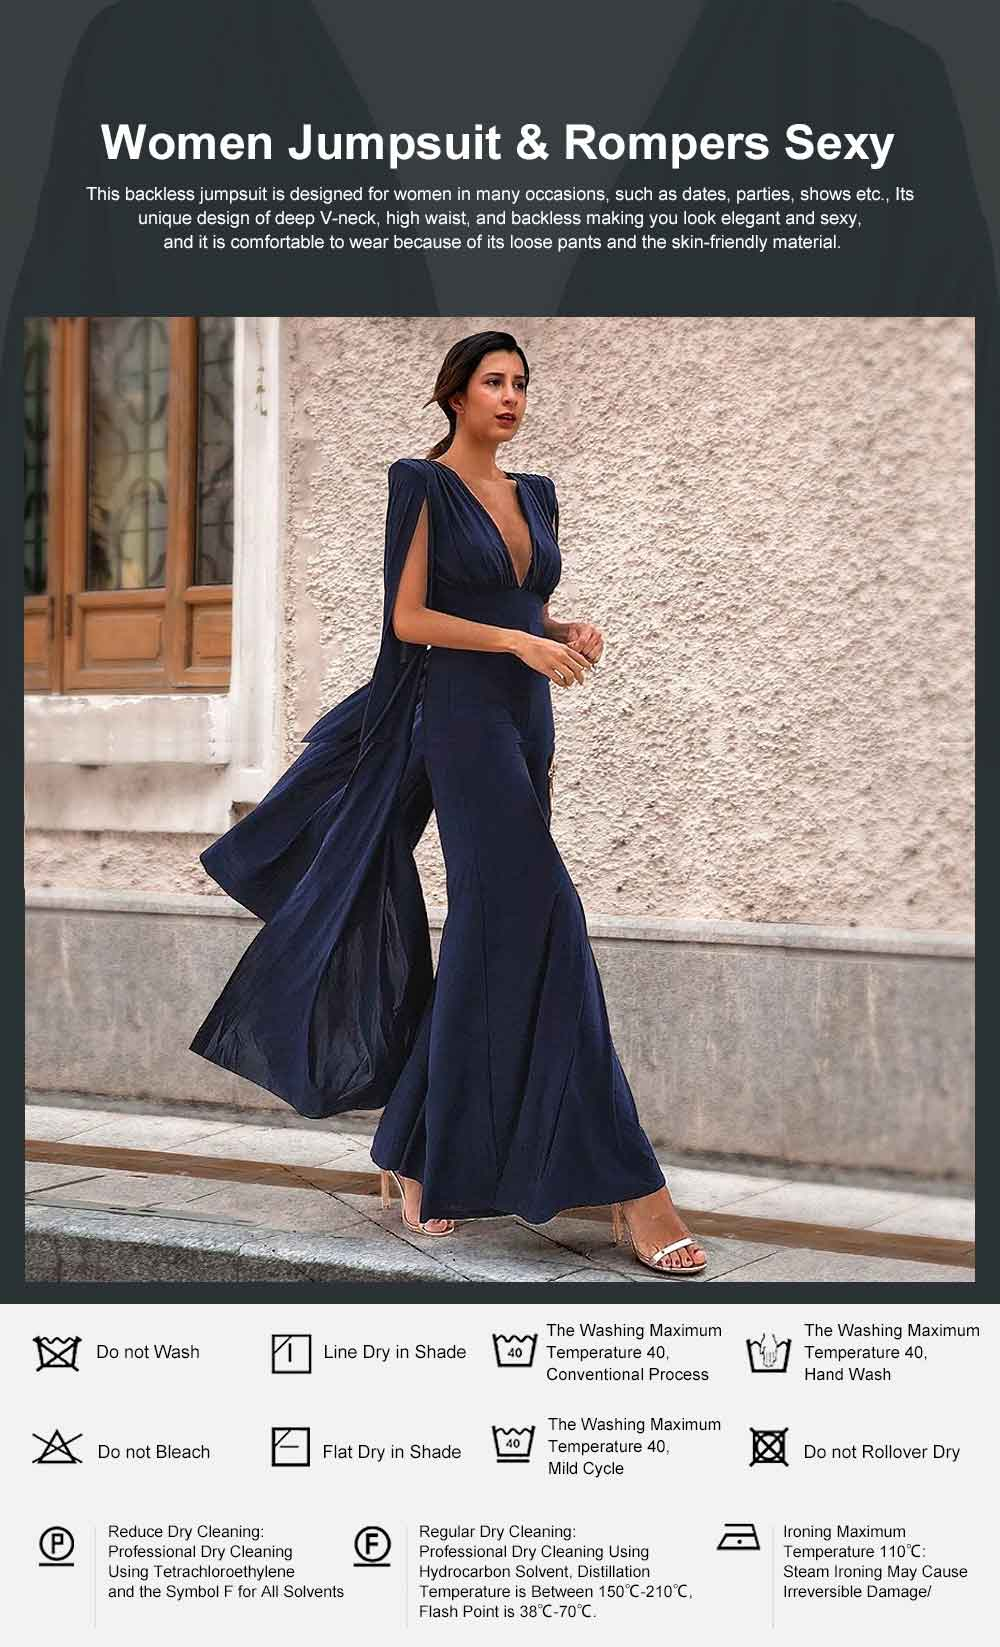 2019 Backless Jumpsuit For Lady, Women's Fashion Sexy Party Evening Bodysuits Rompers, Long Sleeve and Loose Trousers 0